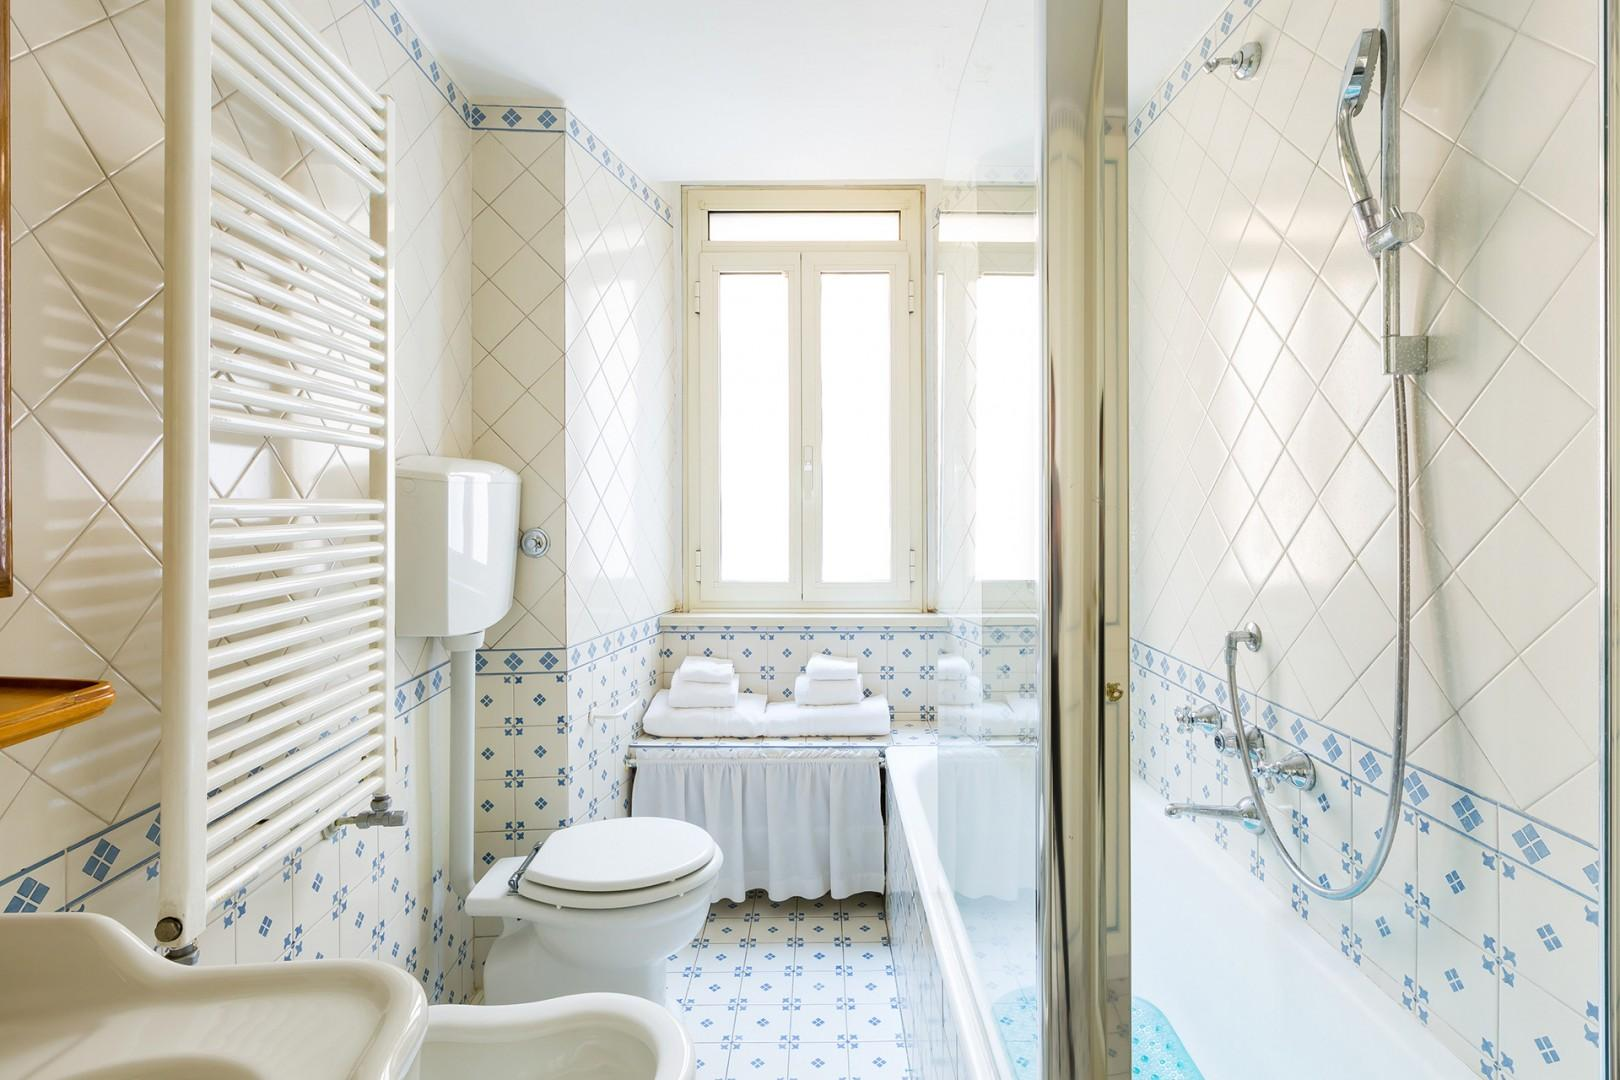 Light filled bathroom. There is a wall of closets at the opposite end of this bathroom.